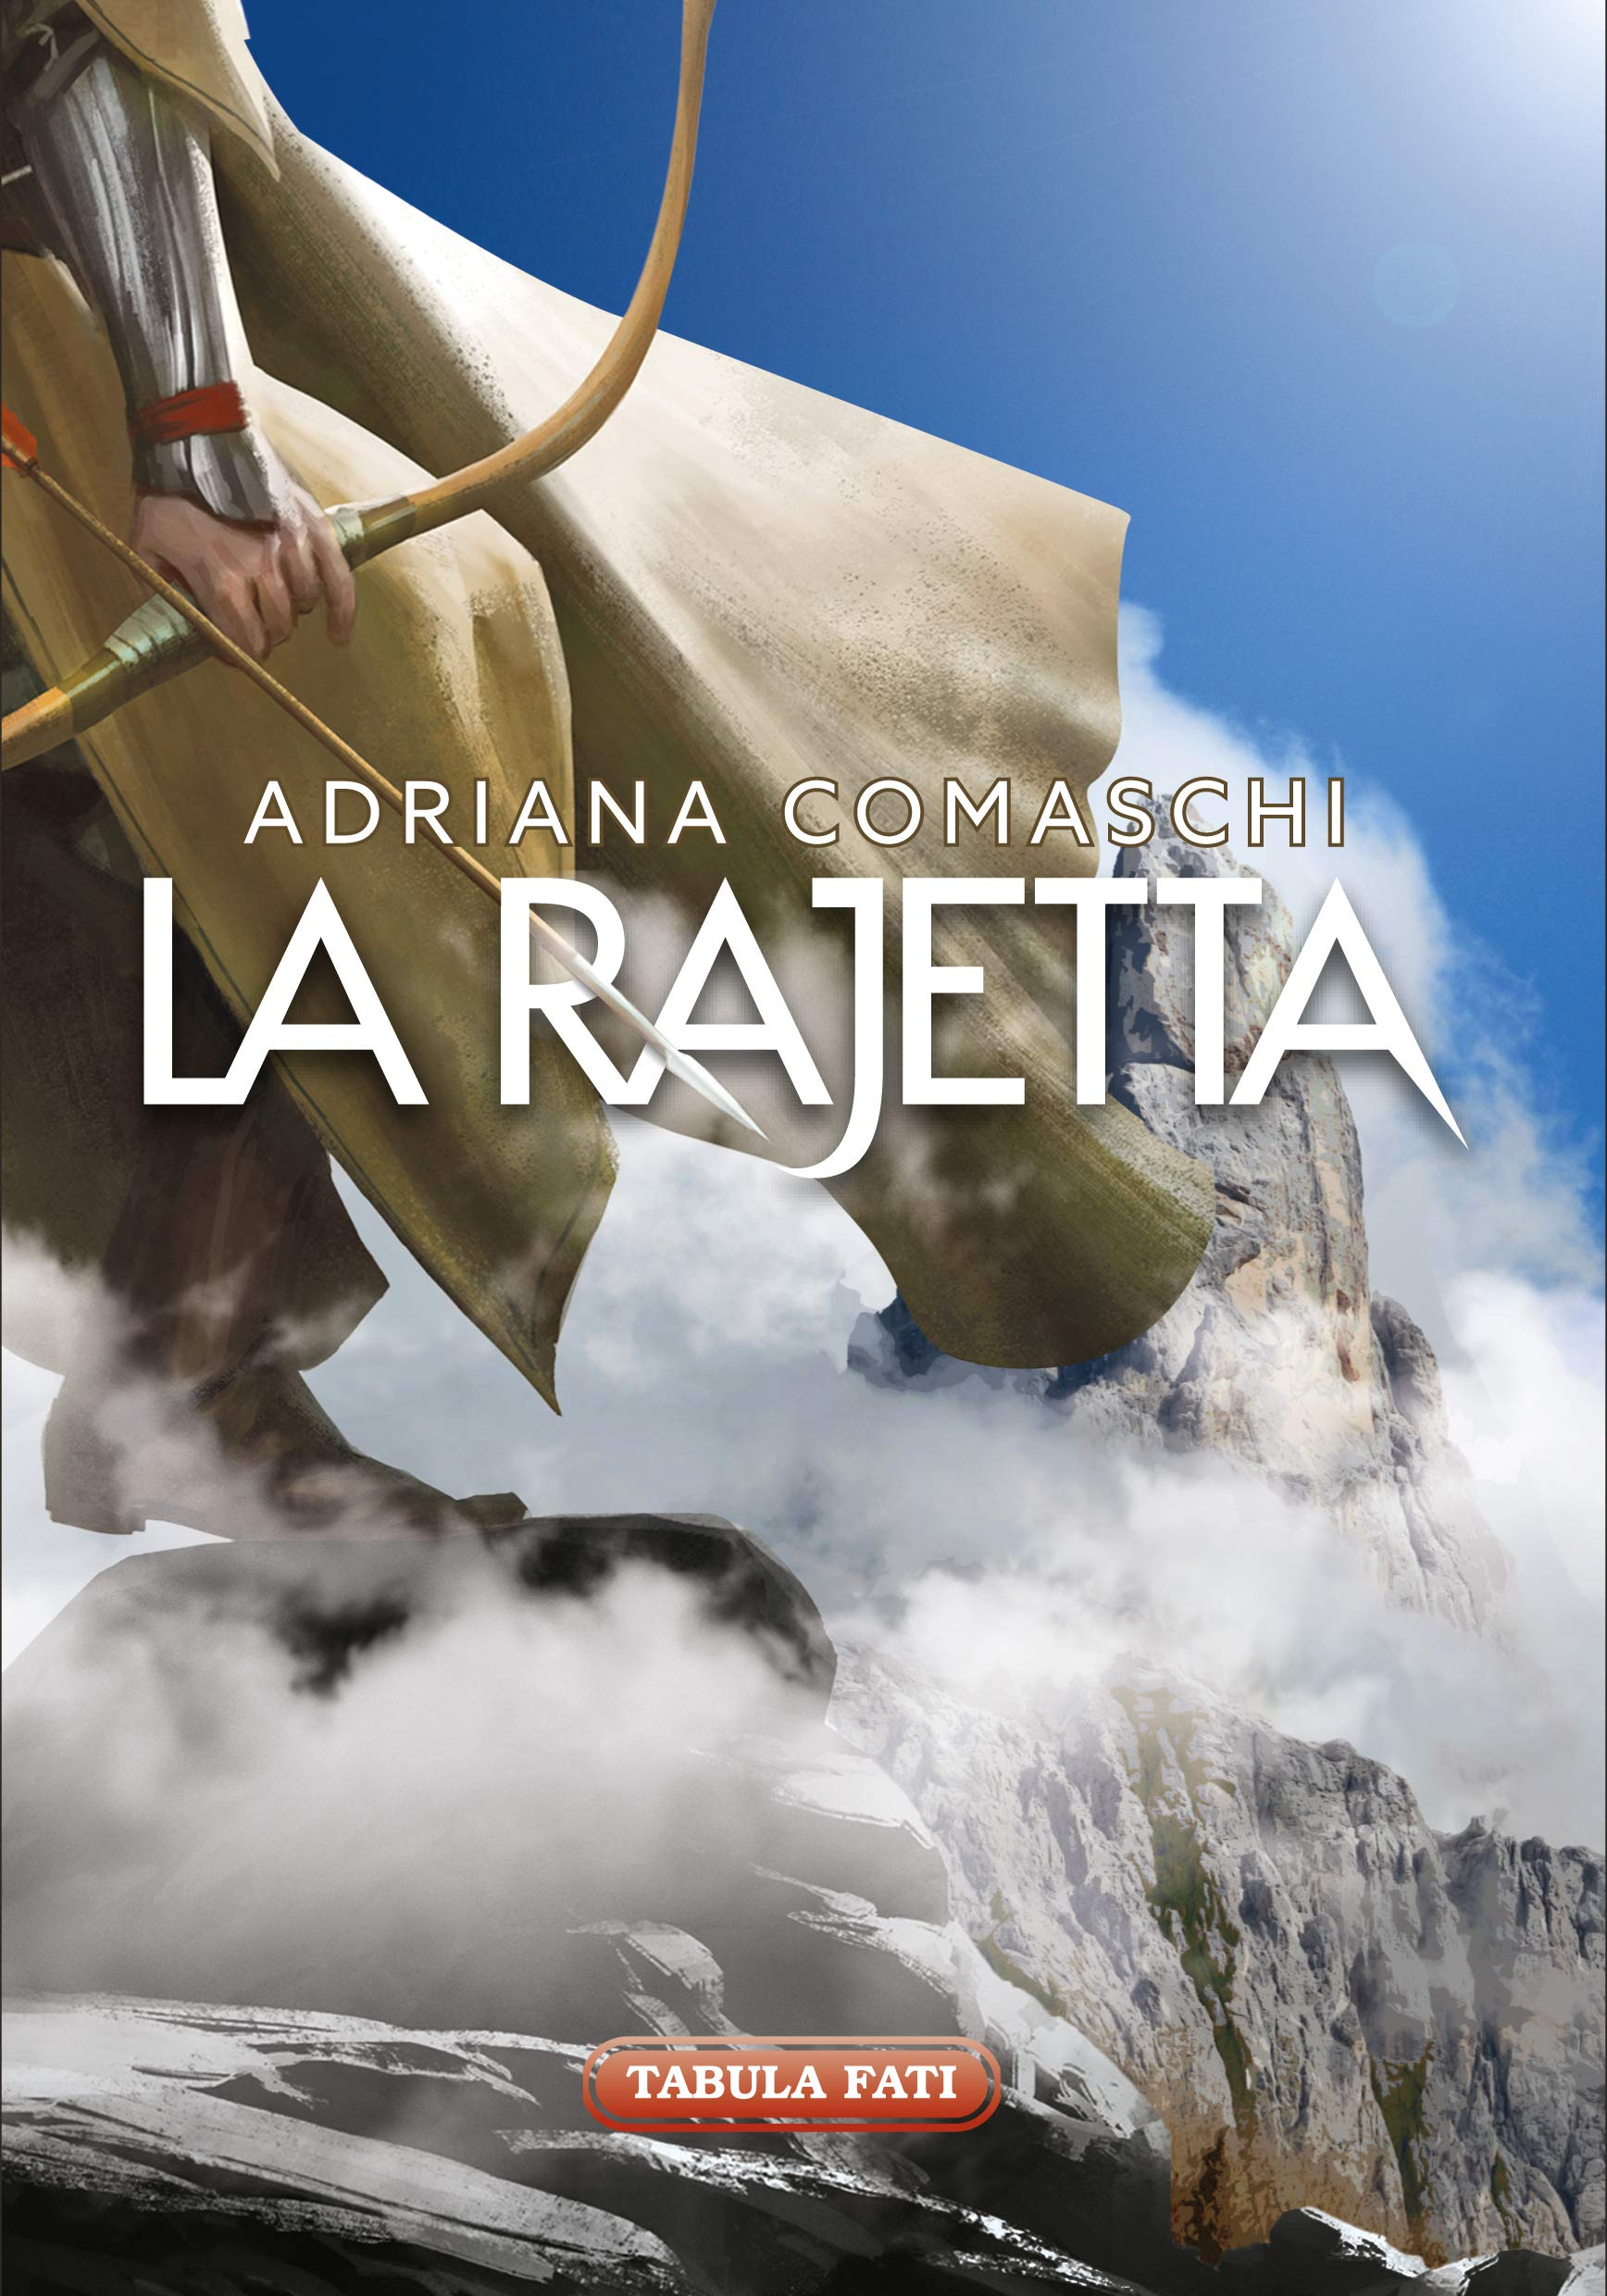 Amazon.it: La rajetta - Comaschi, Adriana - Libri